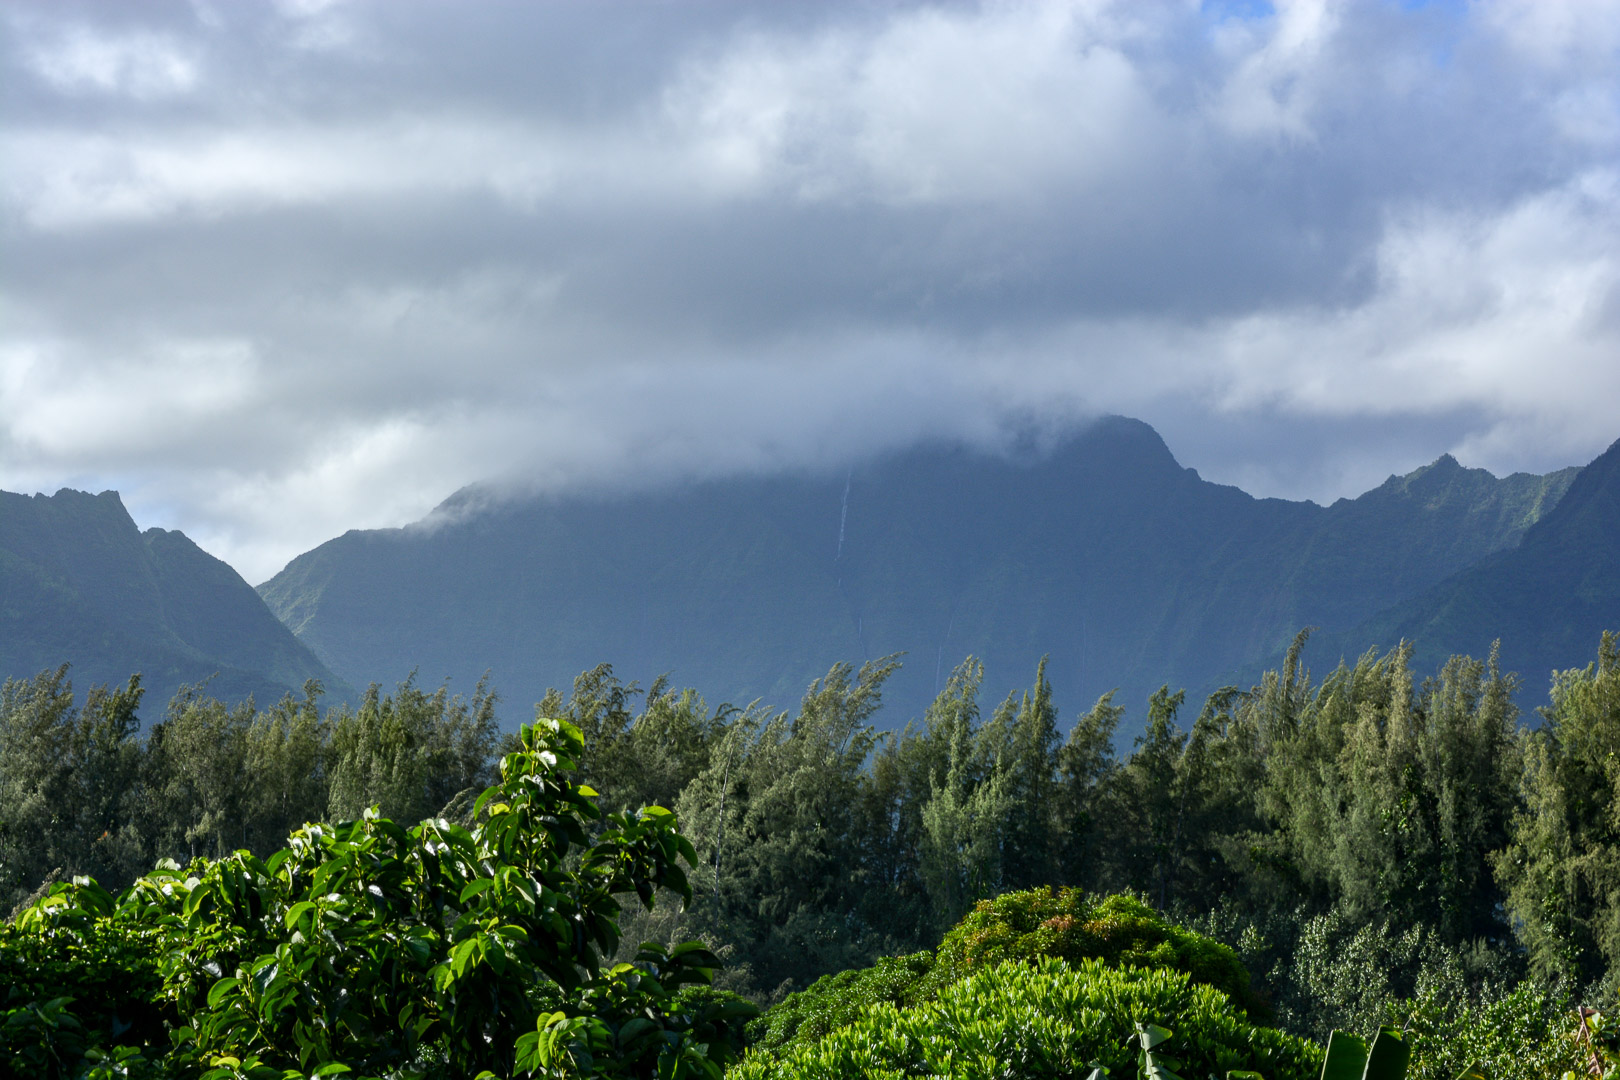 Kawaikini Peak is Kauai's highest point at 5,148 feet and has been known as the wettest spot on Earth, with over 400 inches of rain per year! We only caught a brief 5 minute glimpse of the peak…it was covered with clouds and rainfall the entire rest of our time on the island